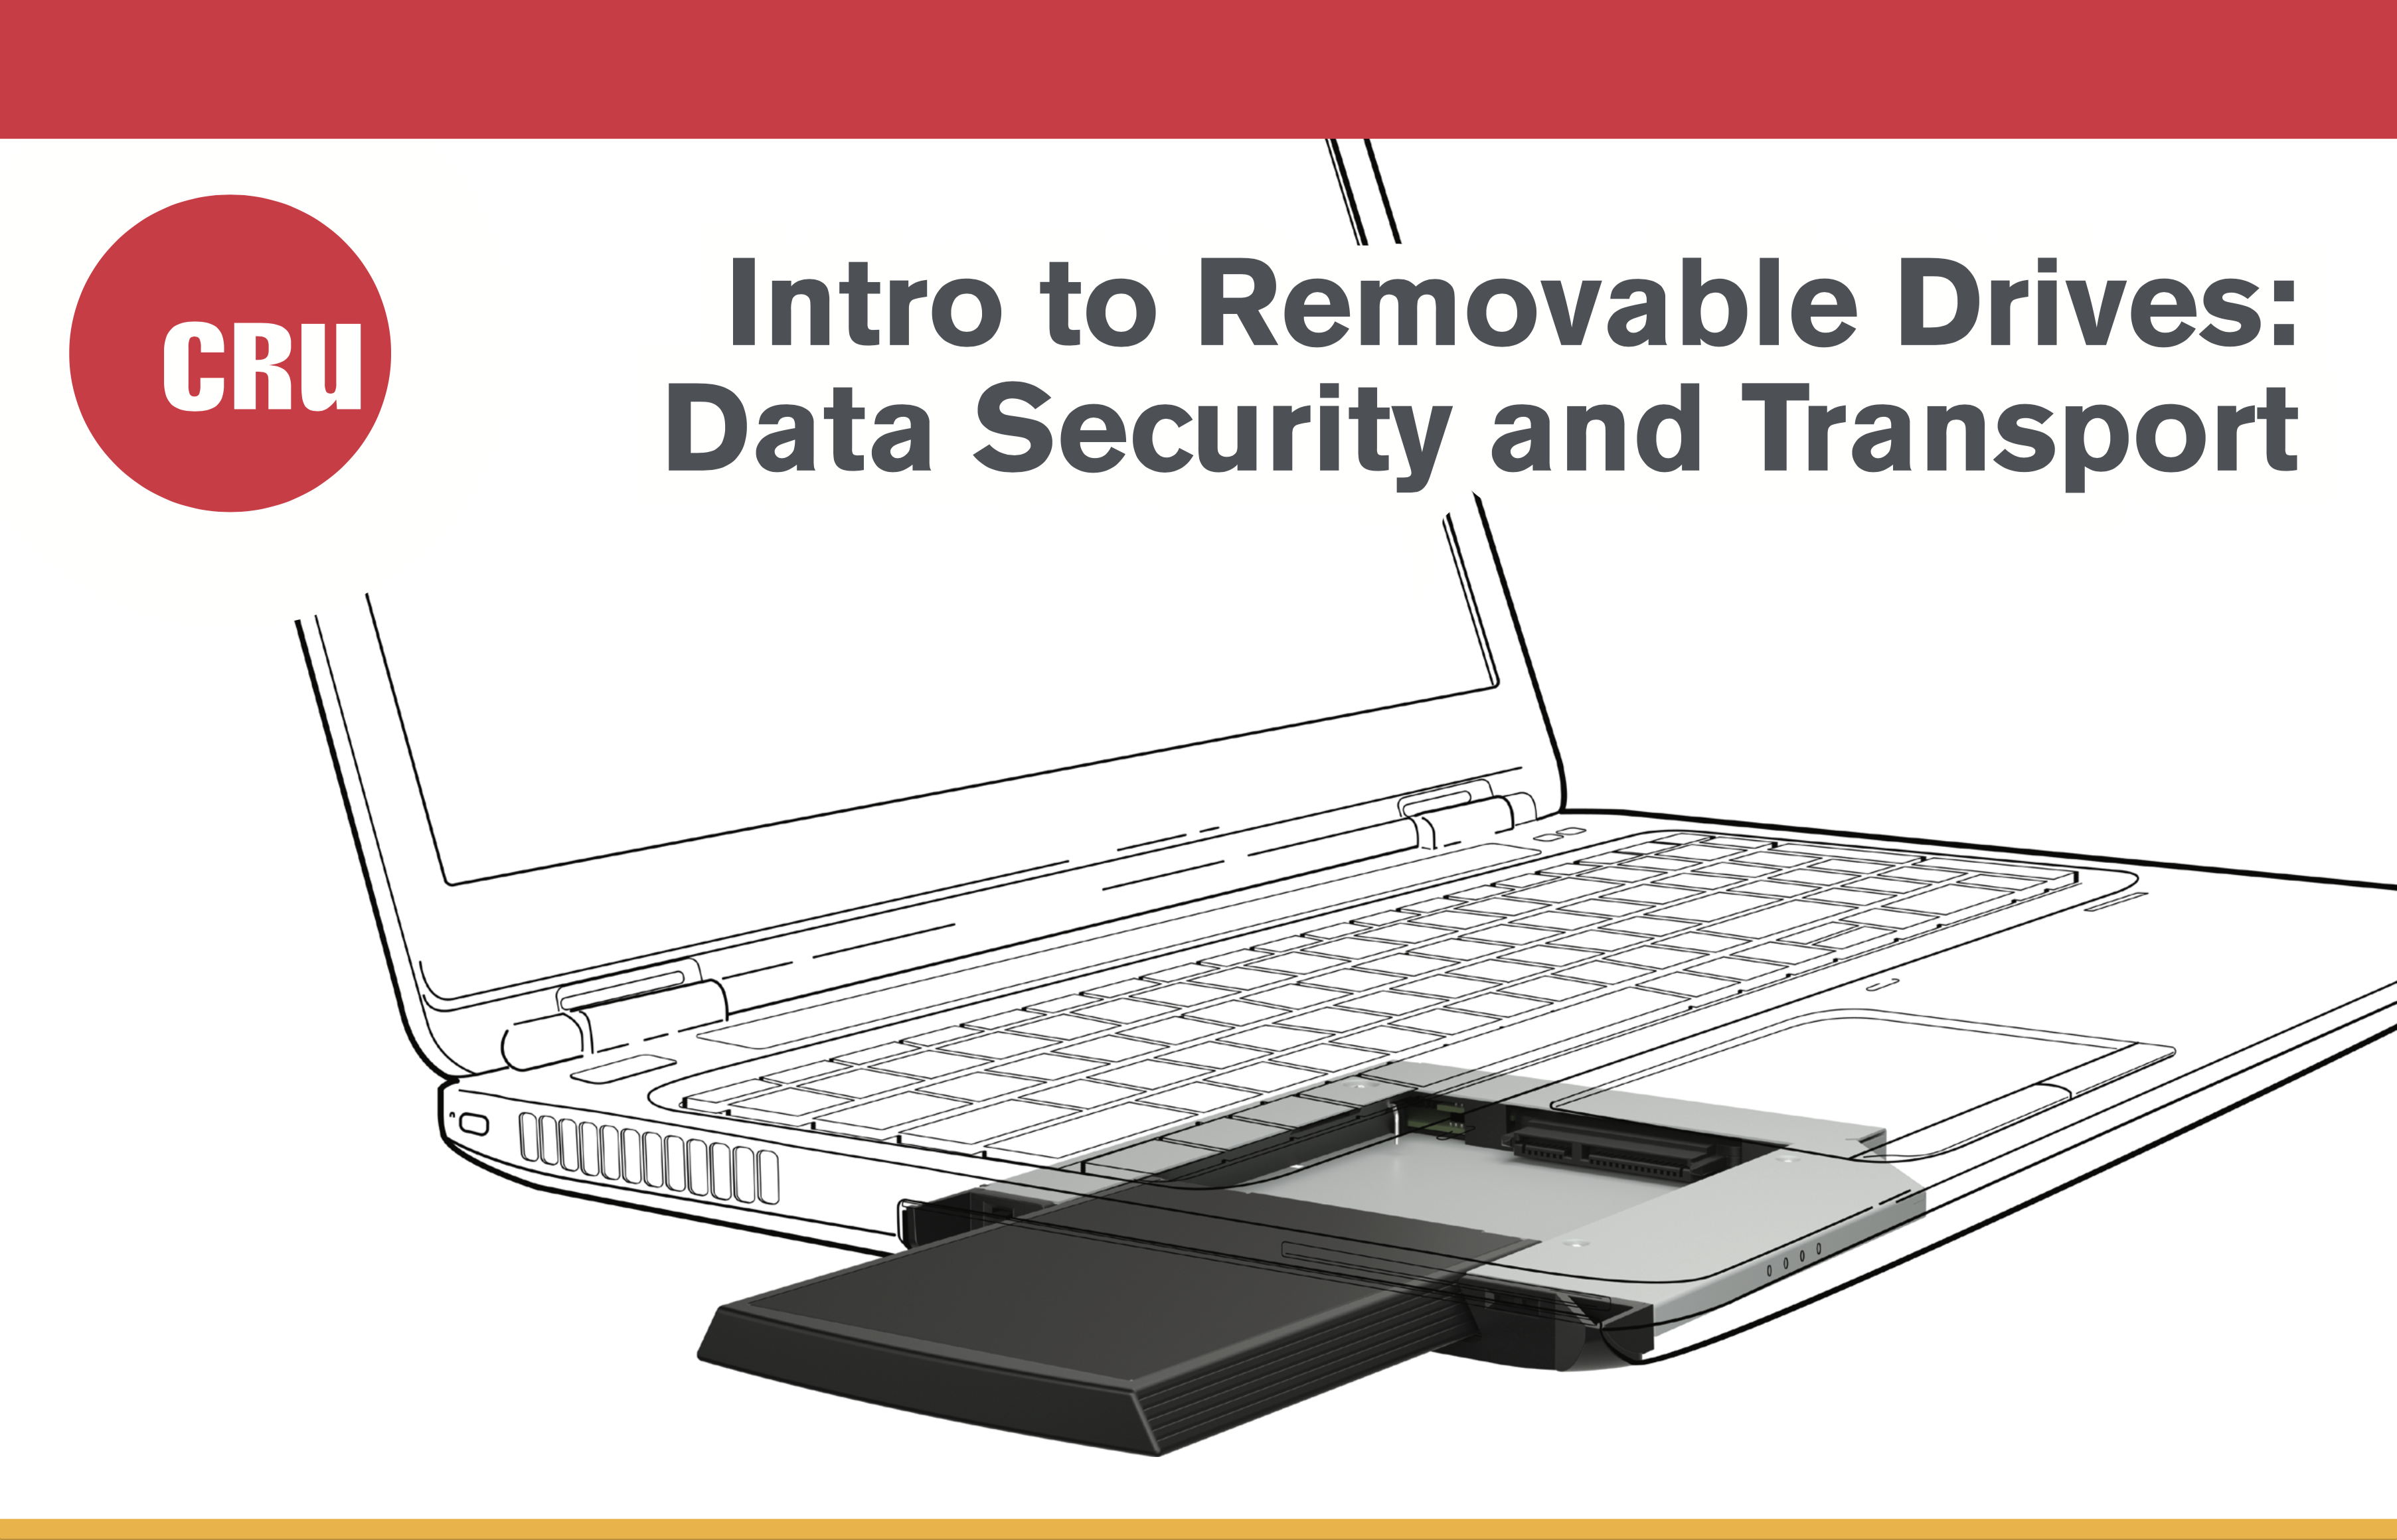 Intro to Removable Drives ebook